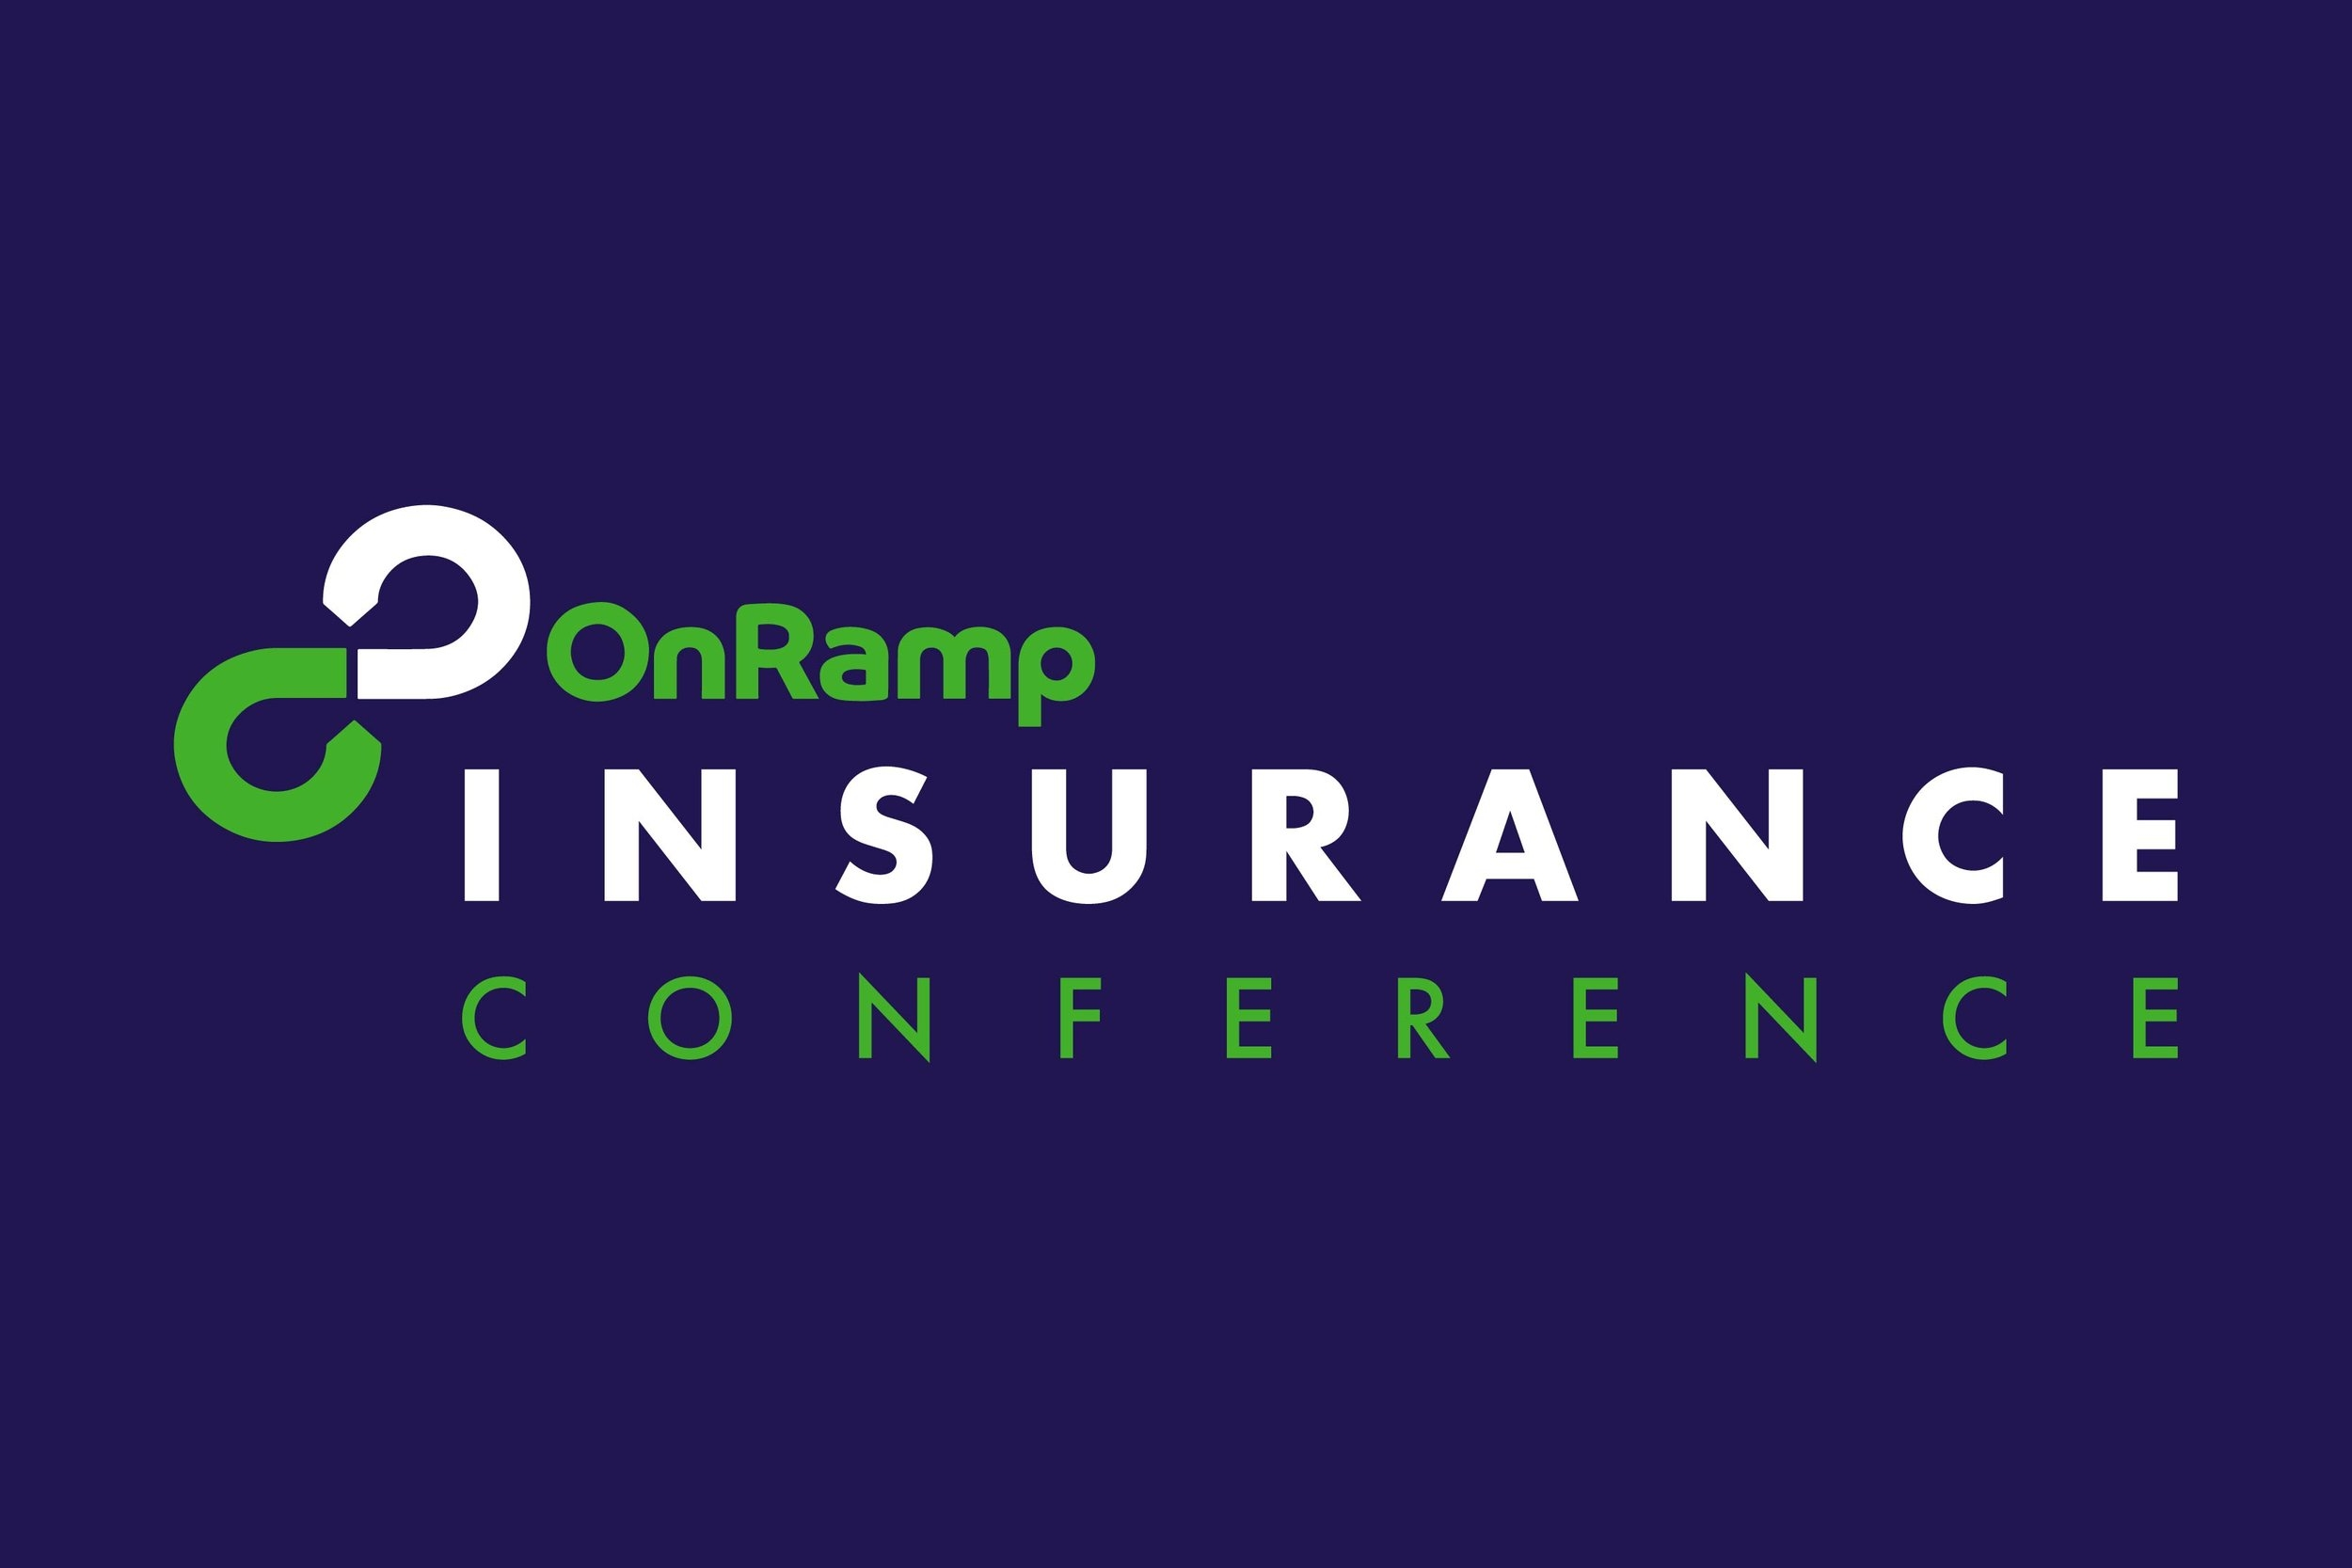 SHOWCASE - Exclusive demo day showcase at the annual OnRamp Insurance Conference.